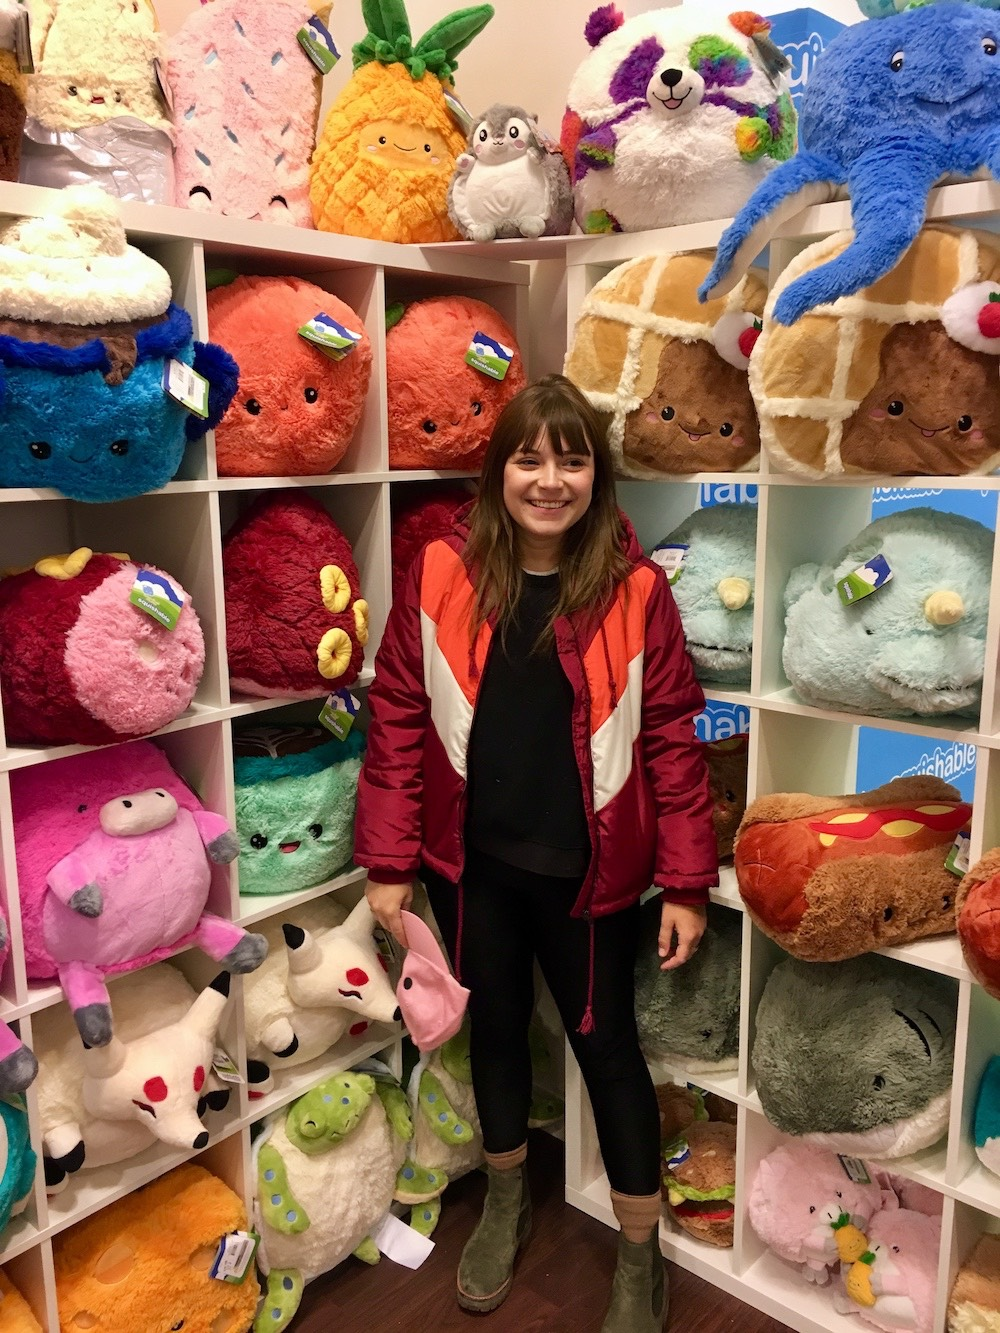 Casey at Squishable.